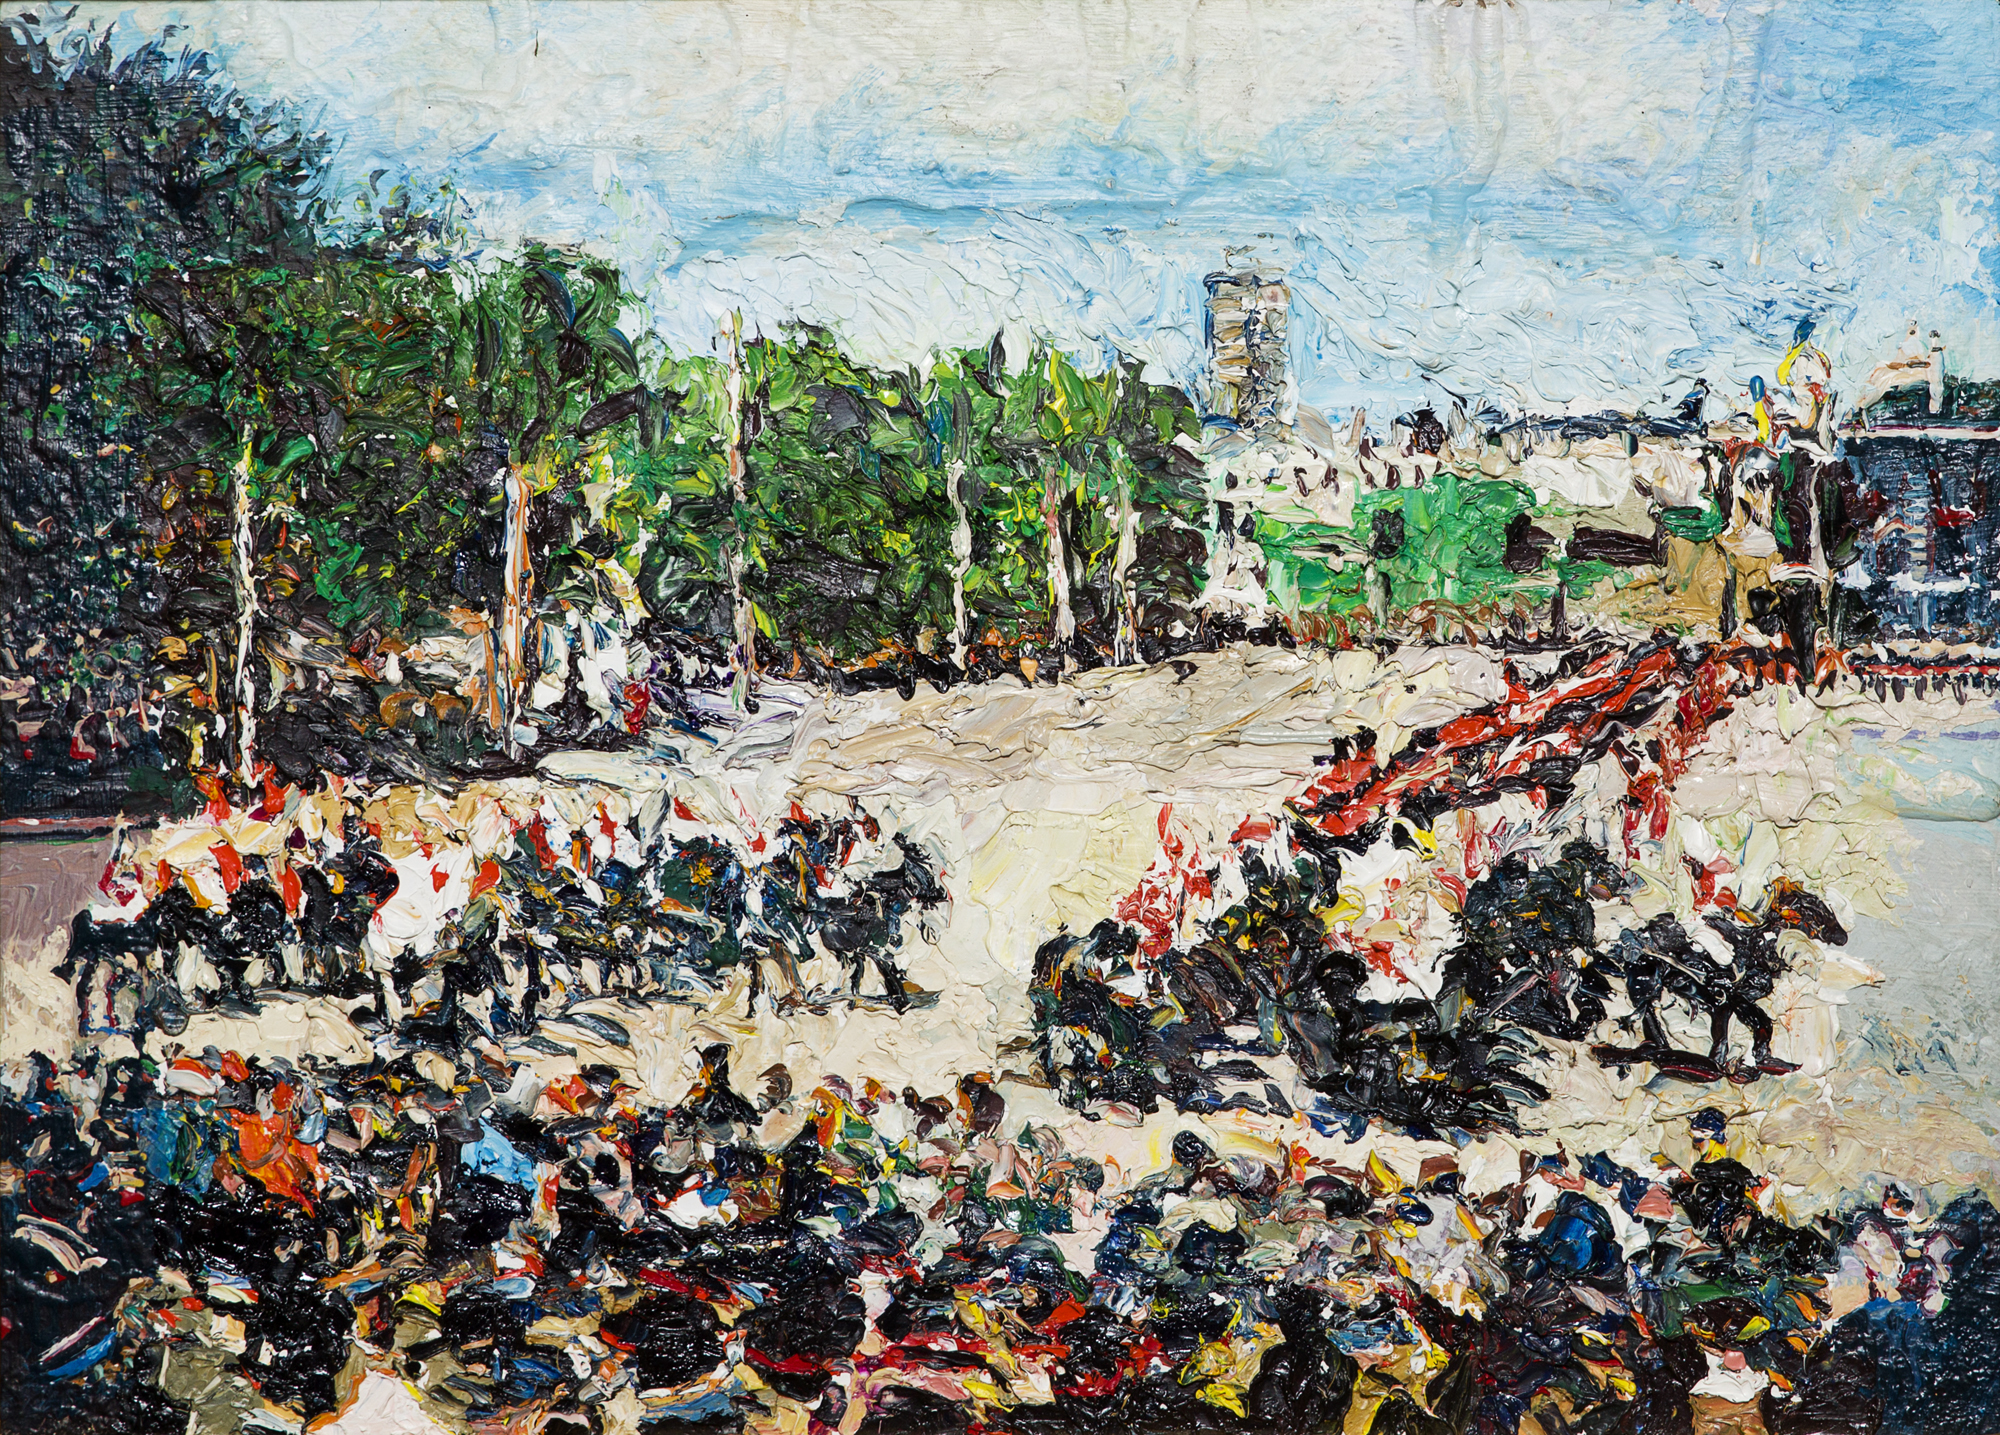 Malcom Morley    Changing of the Guards at Buckingham Palace  1970-71 Oil on panel 33 x 45 cm